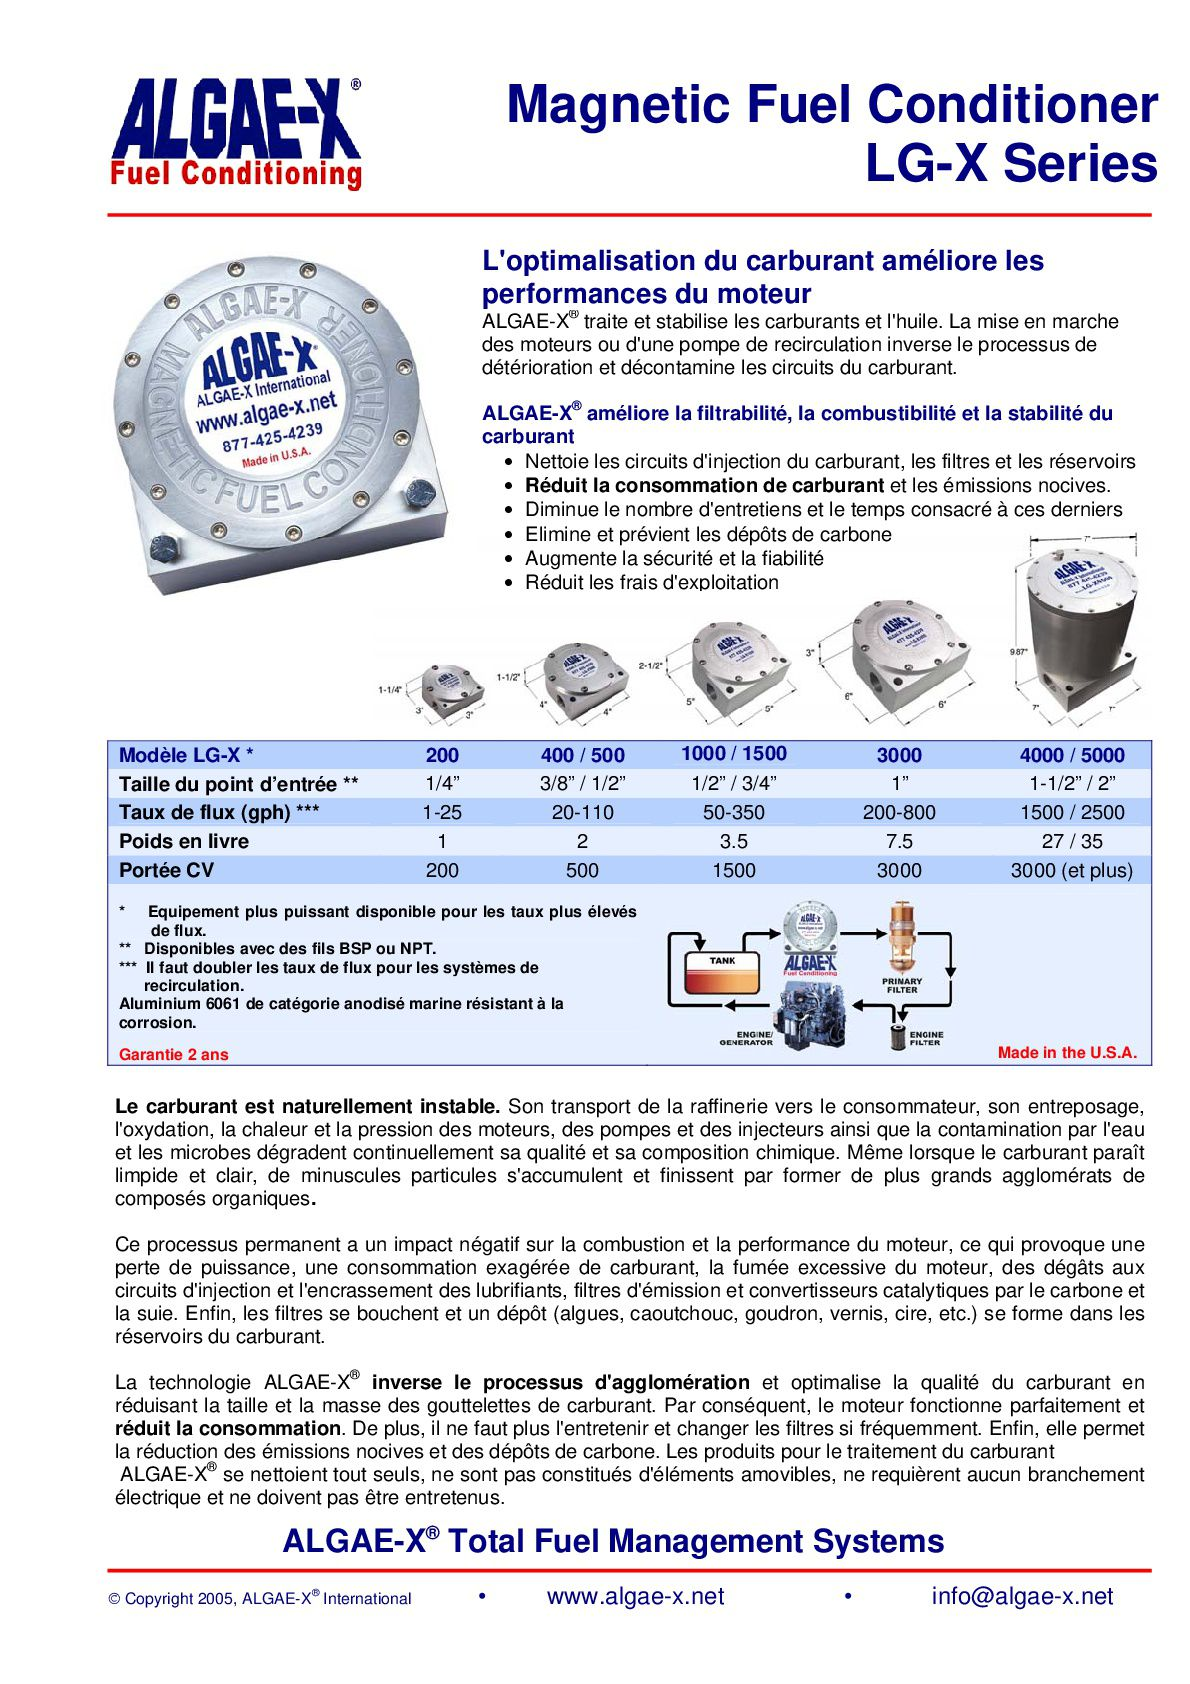 Info sur le conditionneur de gasoil Algae-X.